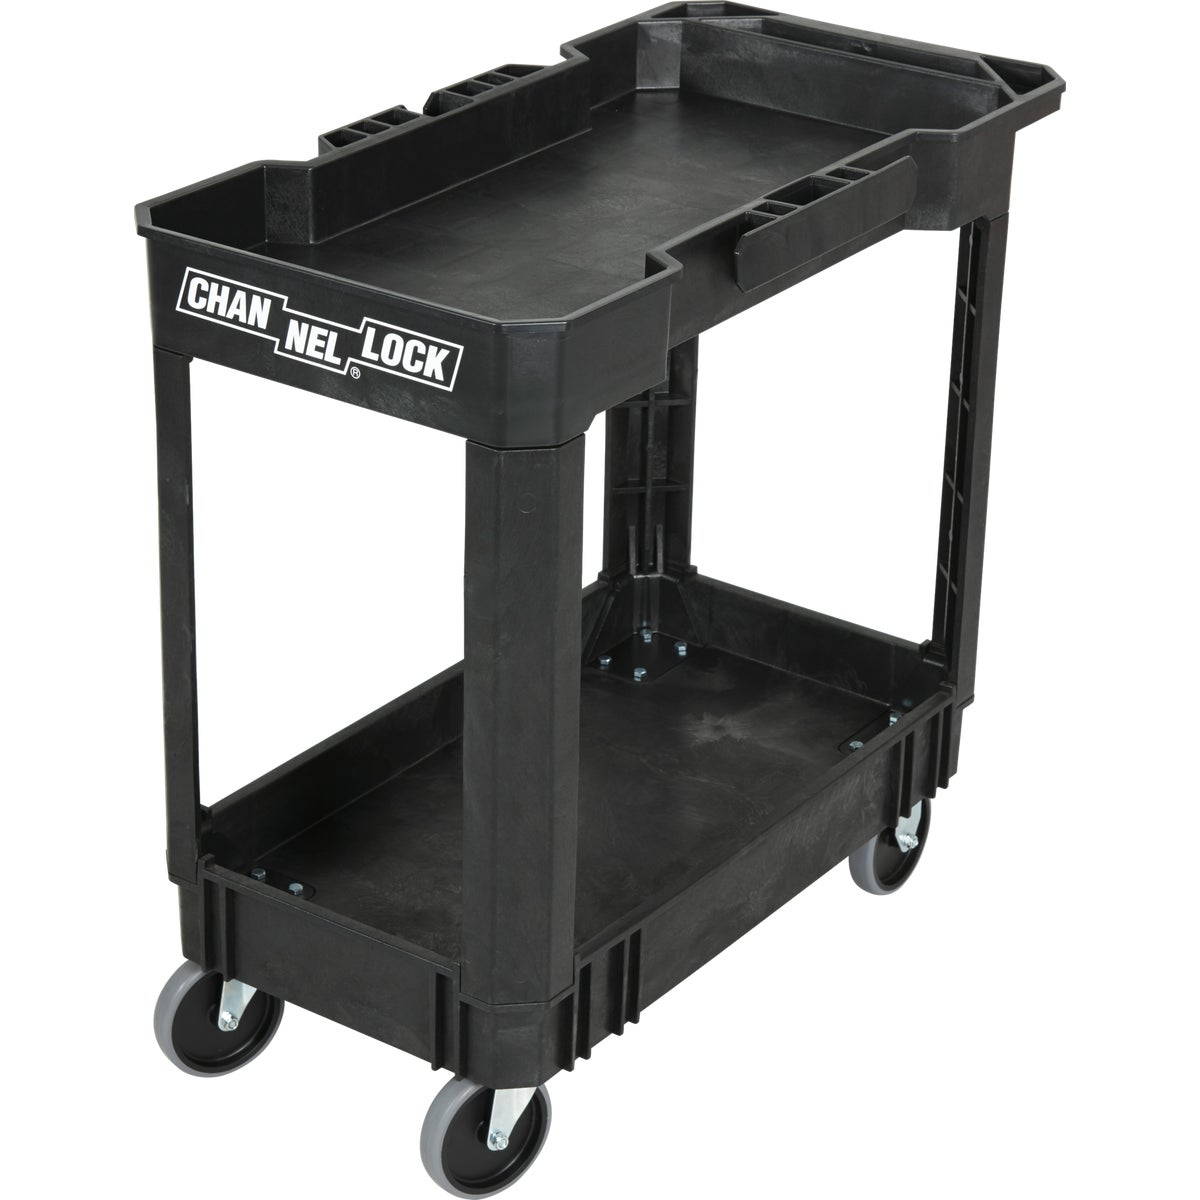 Channellock Utility Cart